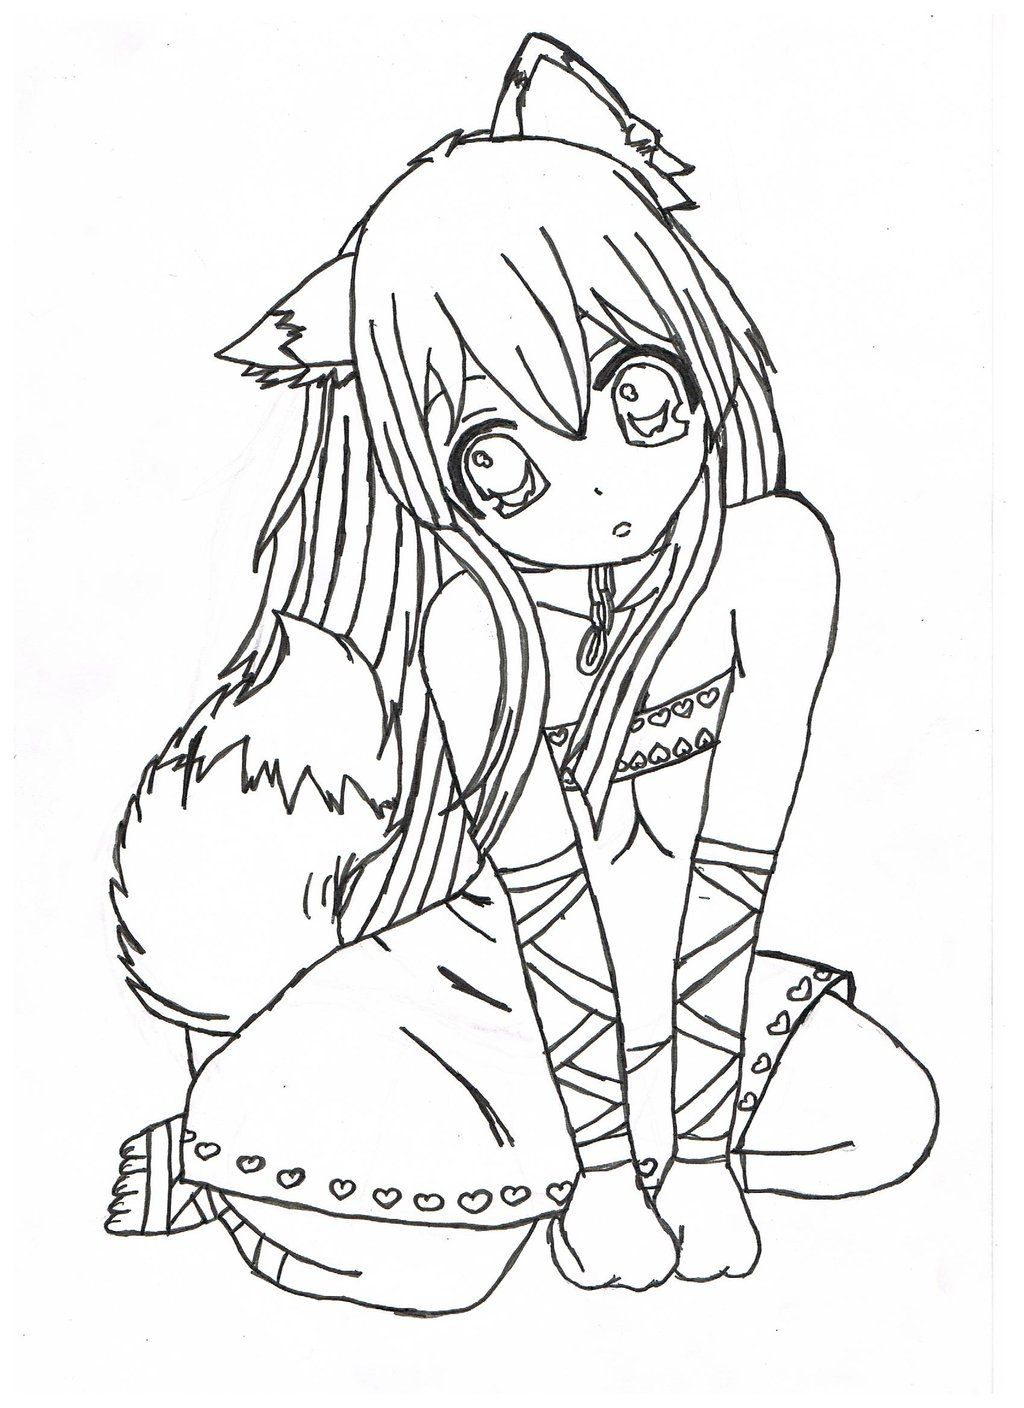 hotaru from shugo chara anime coloring pages for kids printable free coloring pages pinterest shugo chara free and colour book